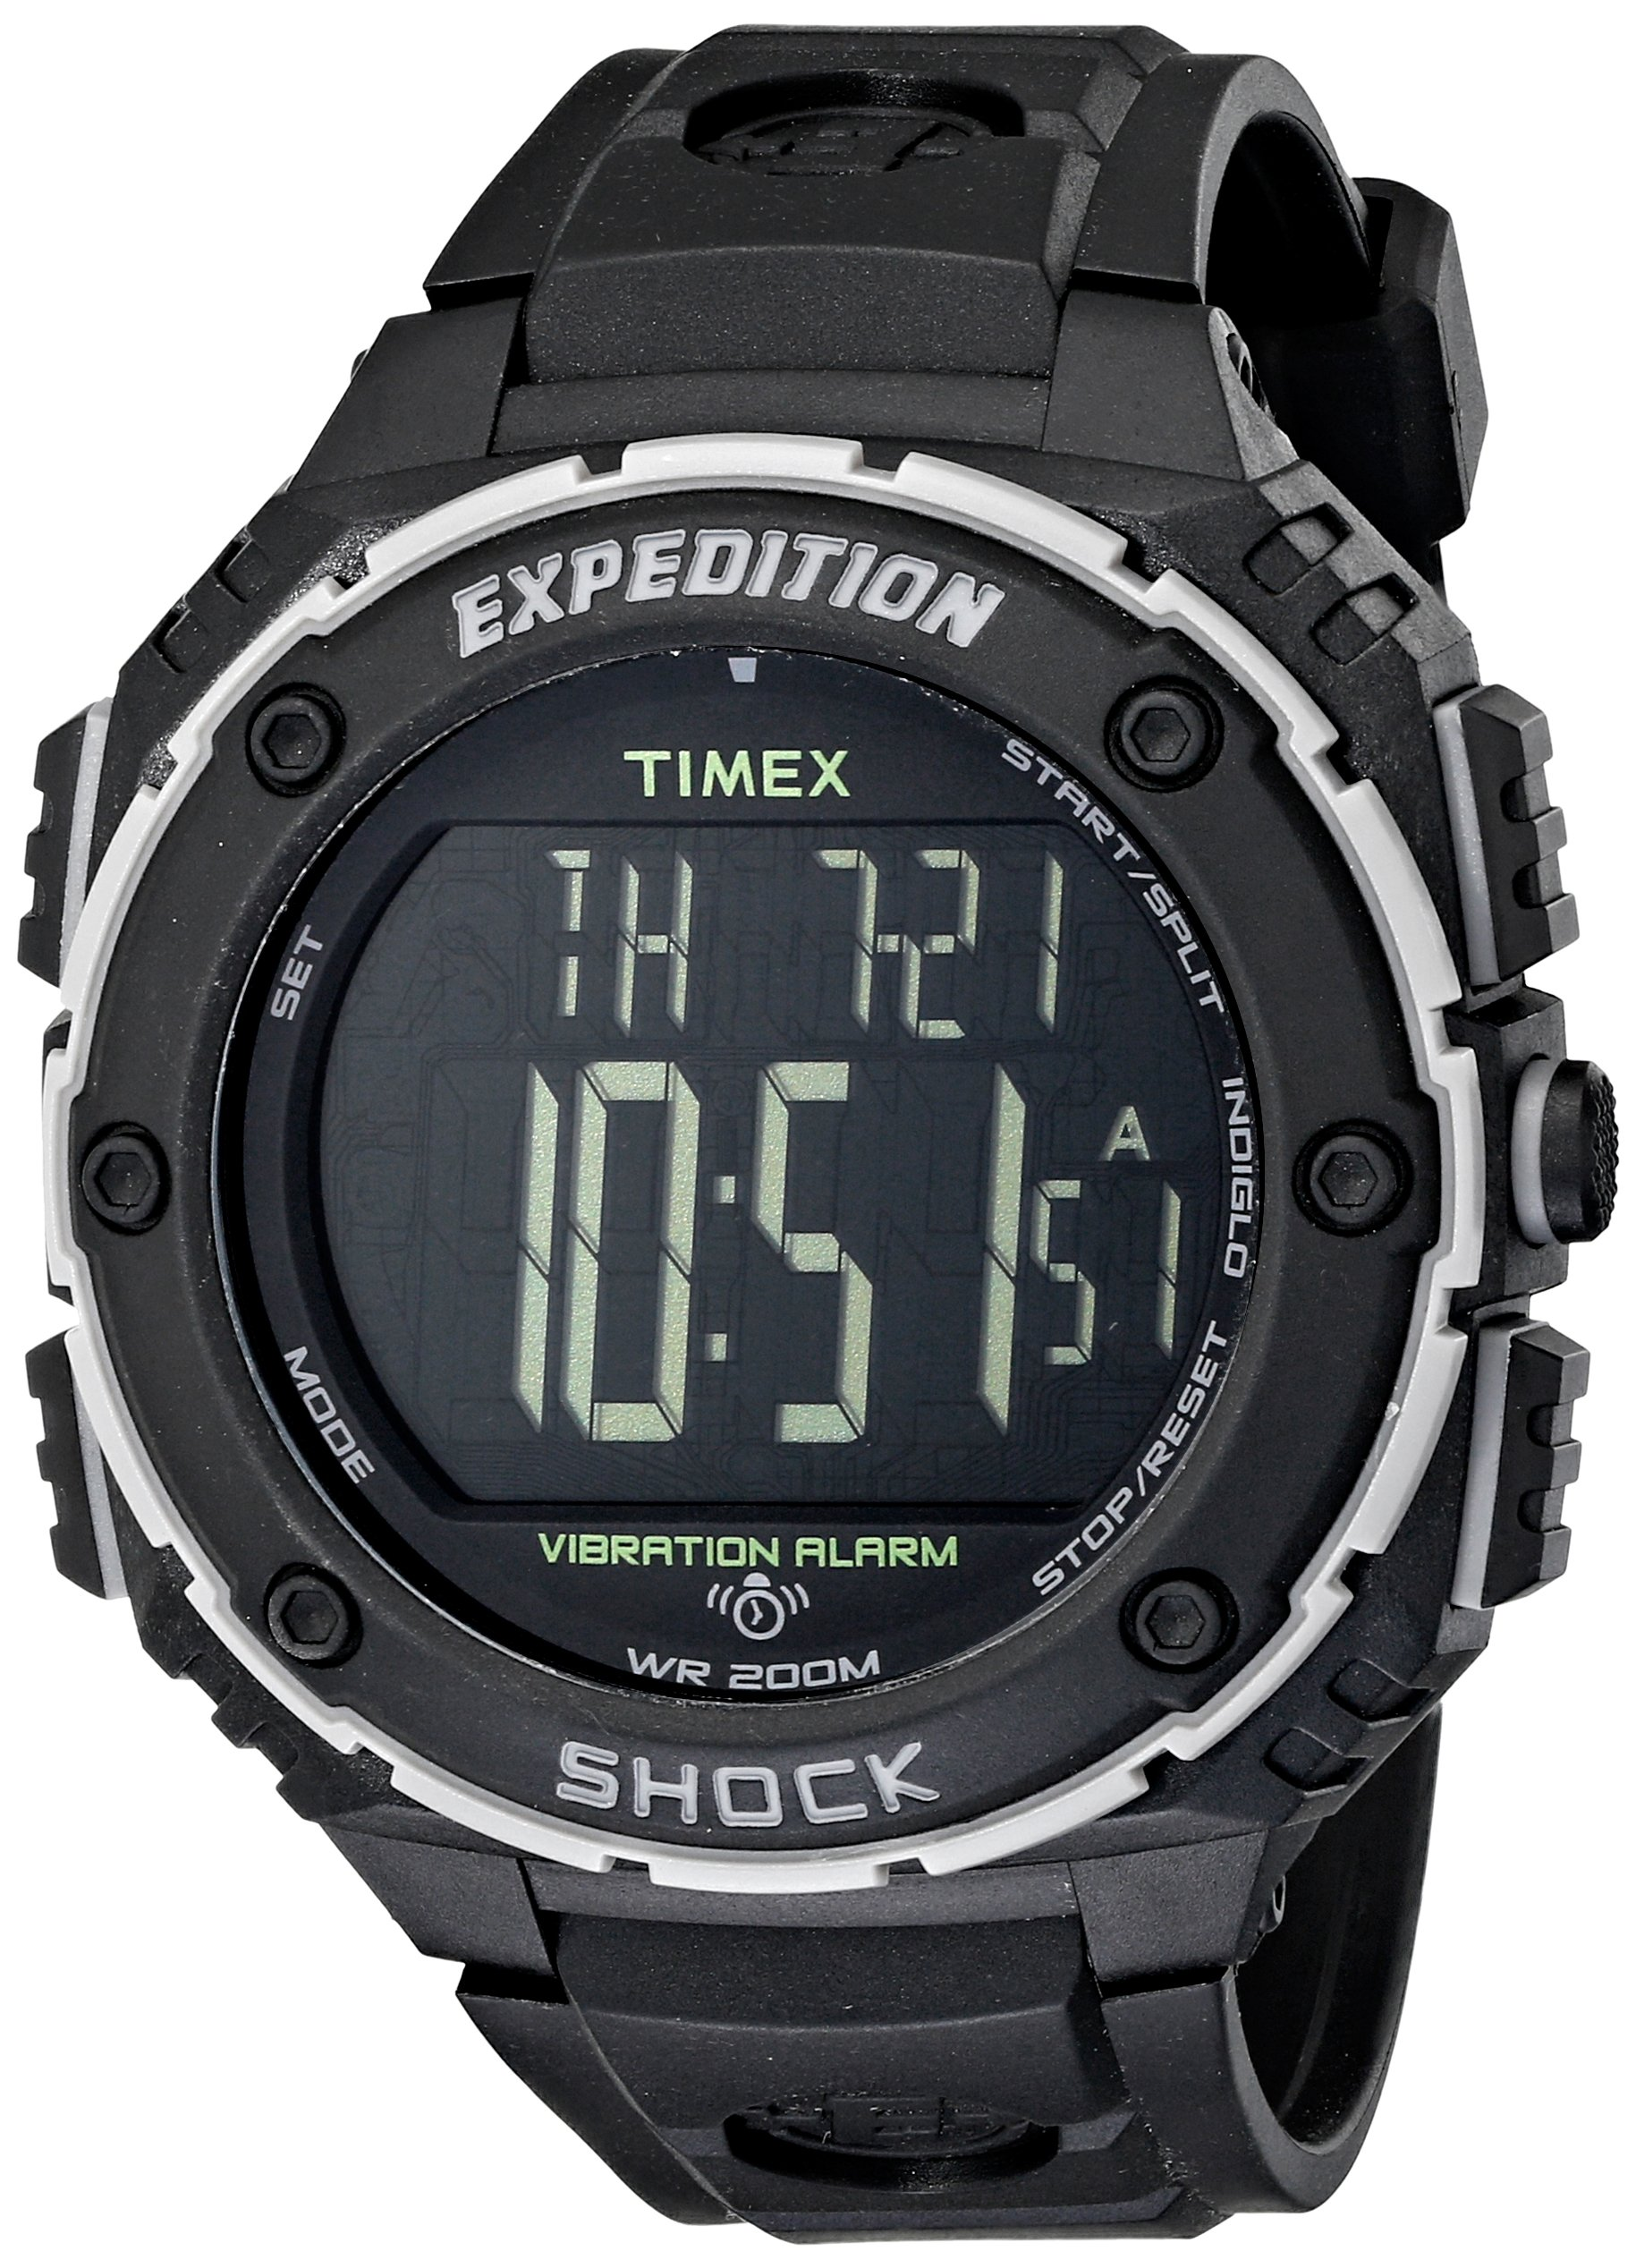 Timex Men's T49950 Expedition Shock XL Vibrating Alarm Black Resin Strap Watch by Timex